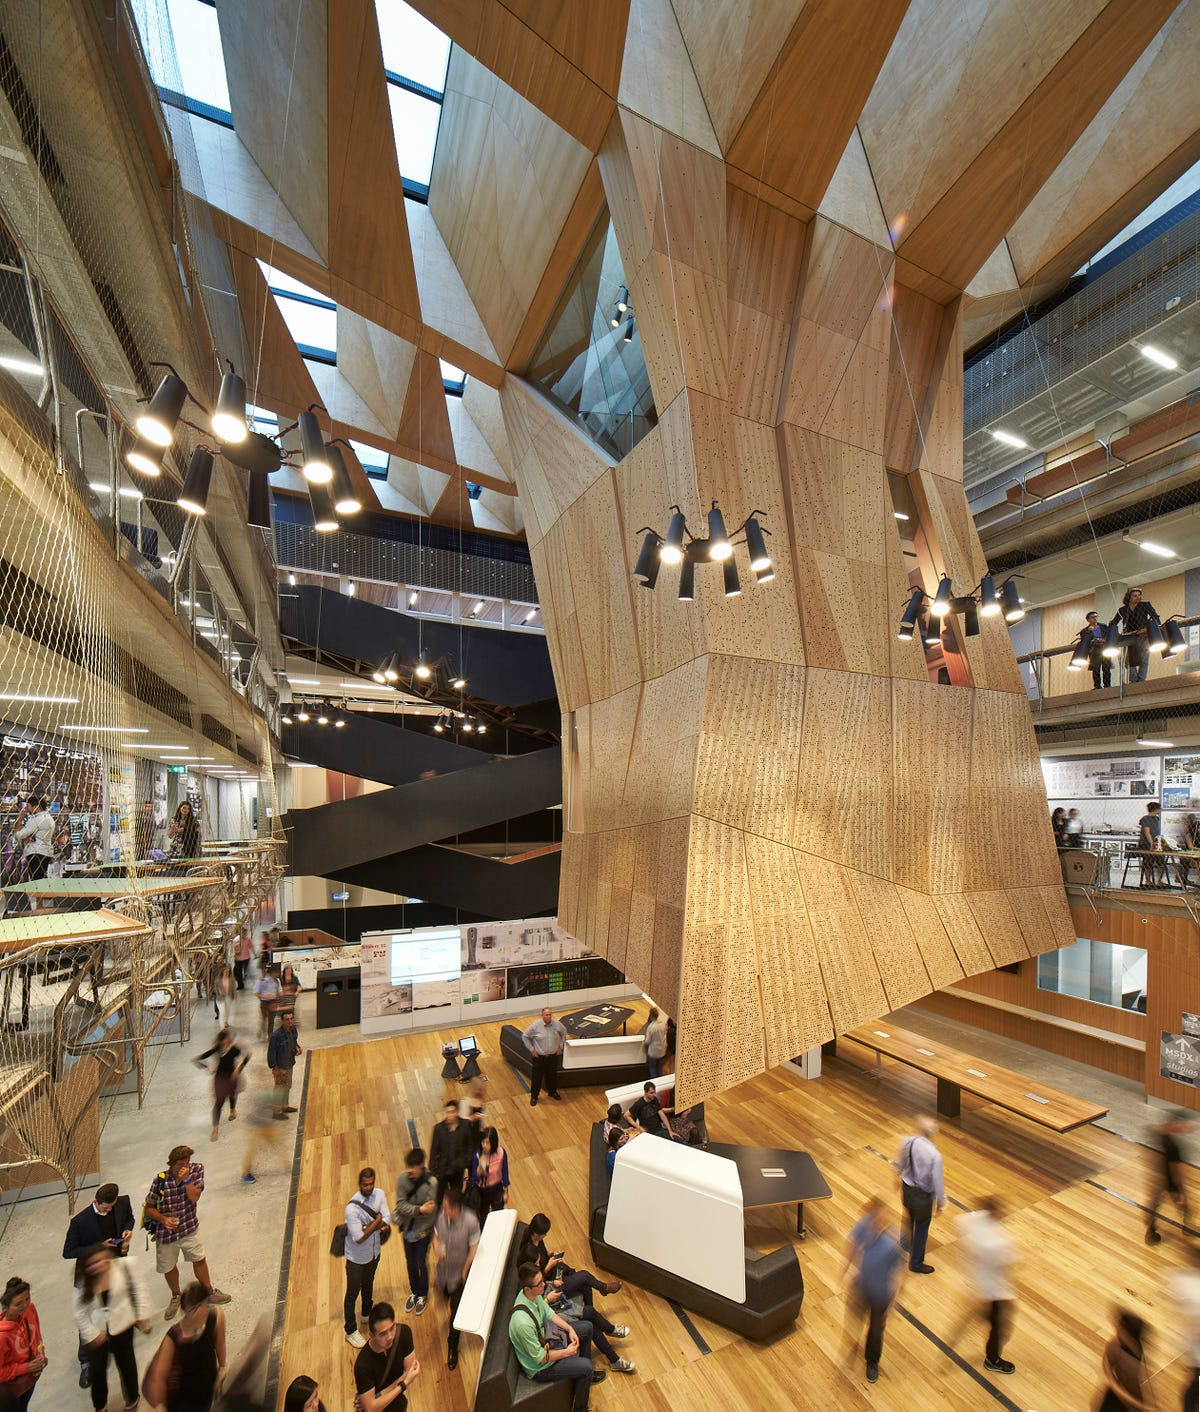 Melbourne's School of Design at The University of Melbourne features an incredible tree-like structure in the main atrium of the building.